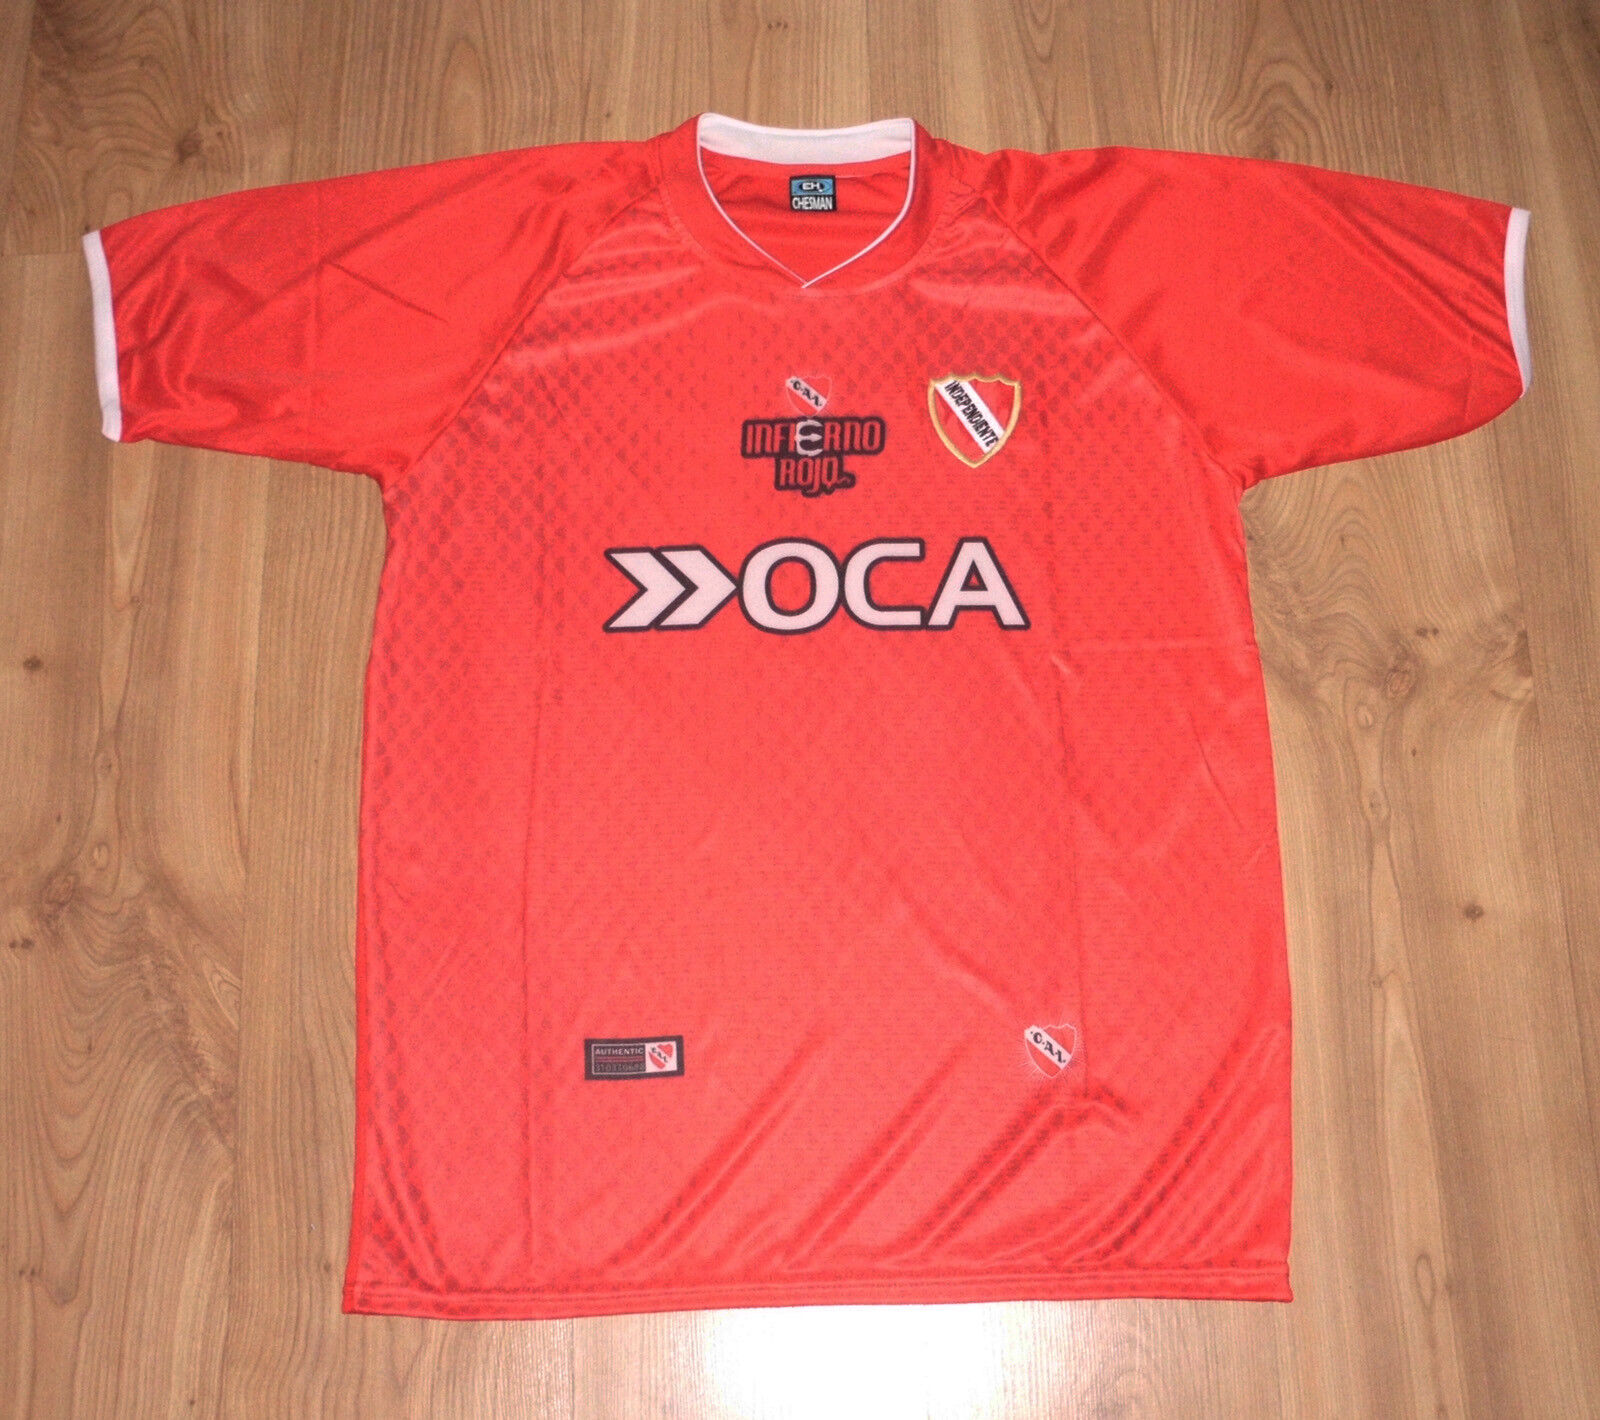 Fan Jersey C. a. I Indepenente, Silberinien, GR.L   XL, New